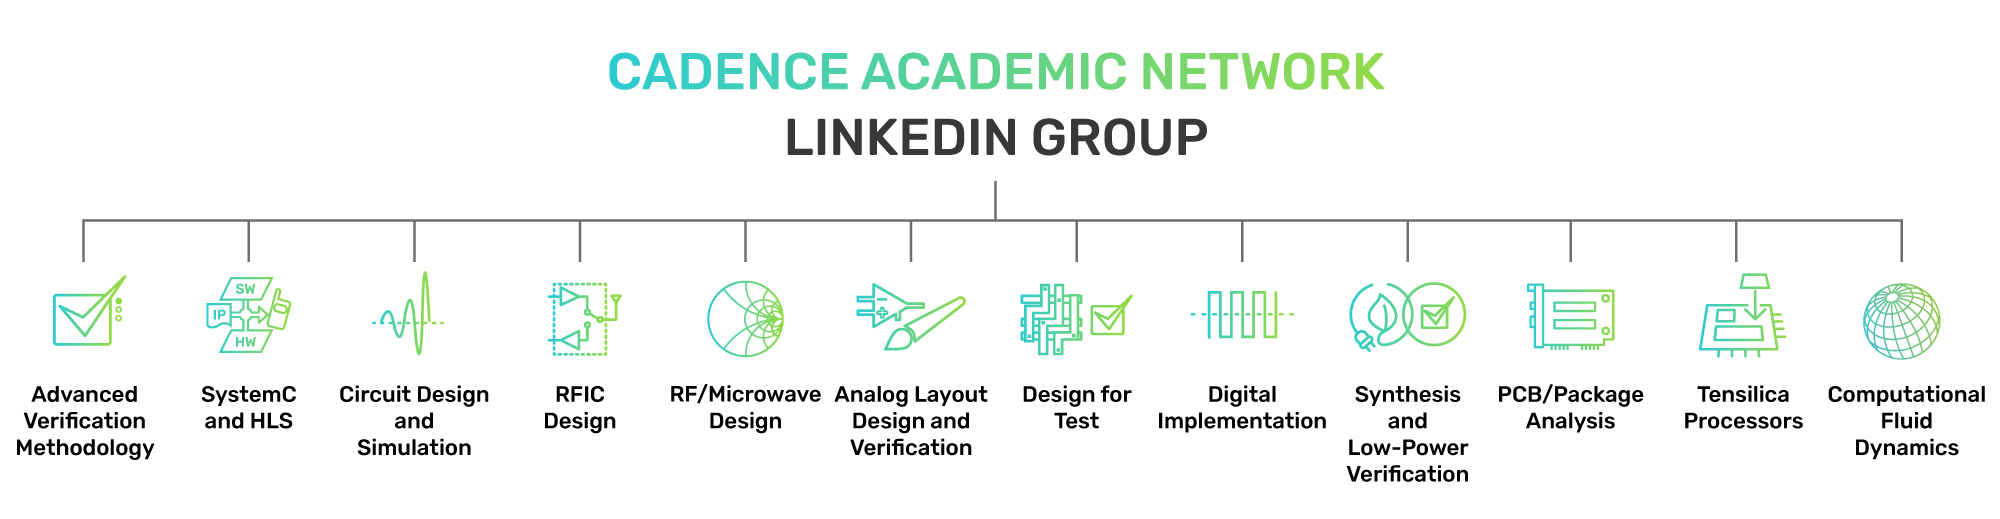 can-linkedIn-groups